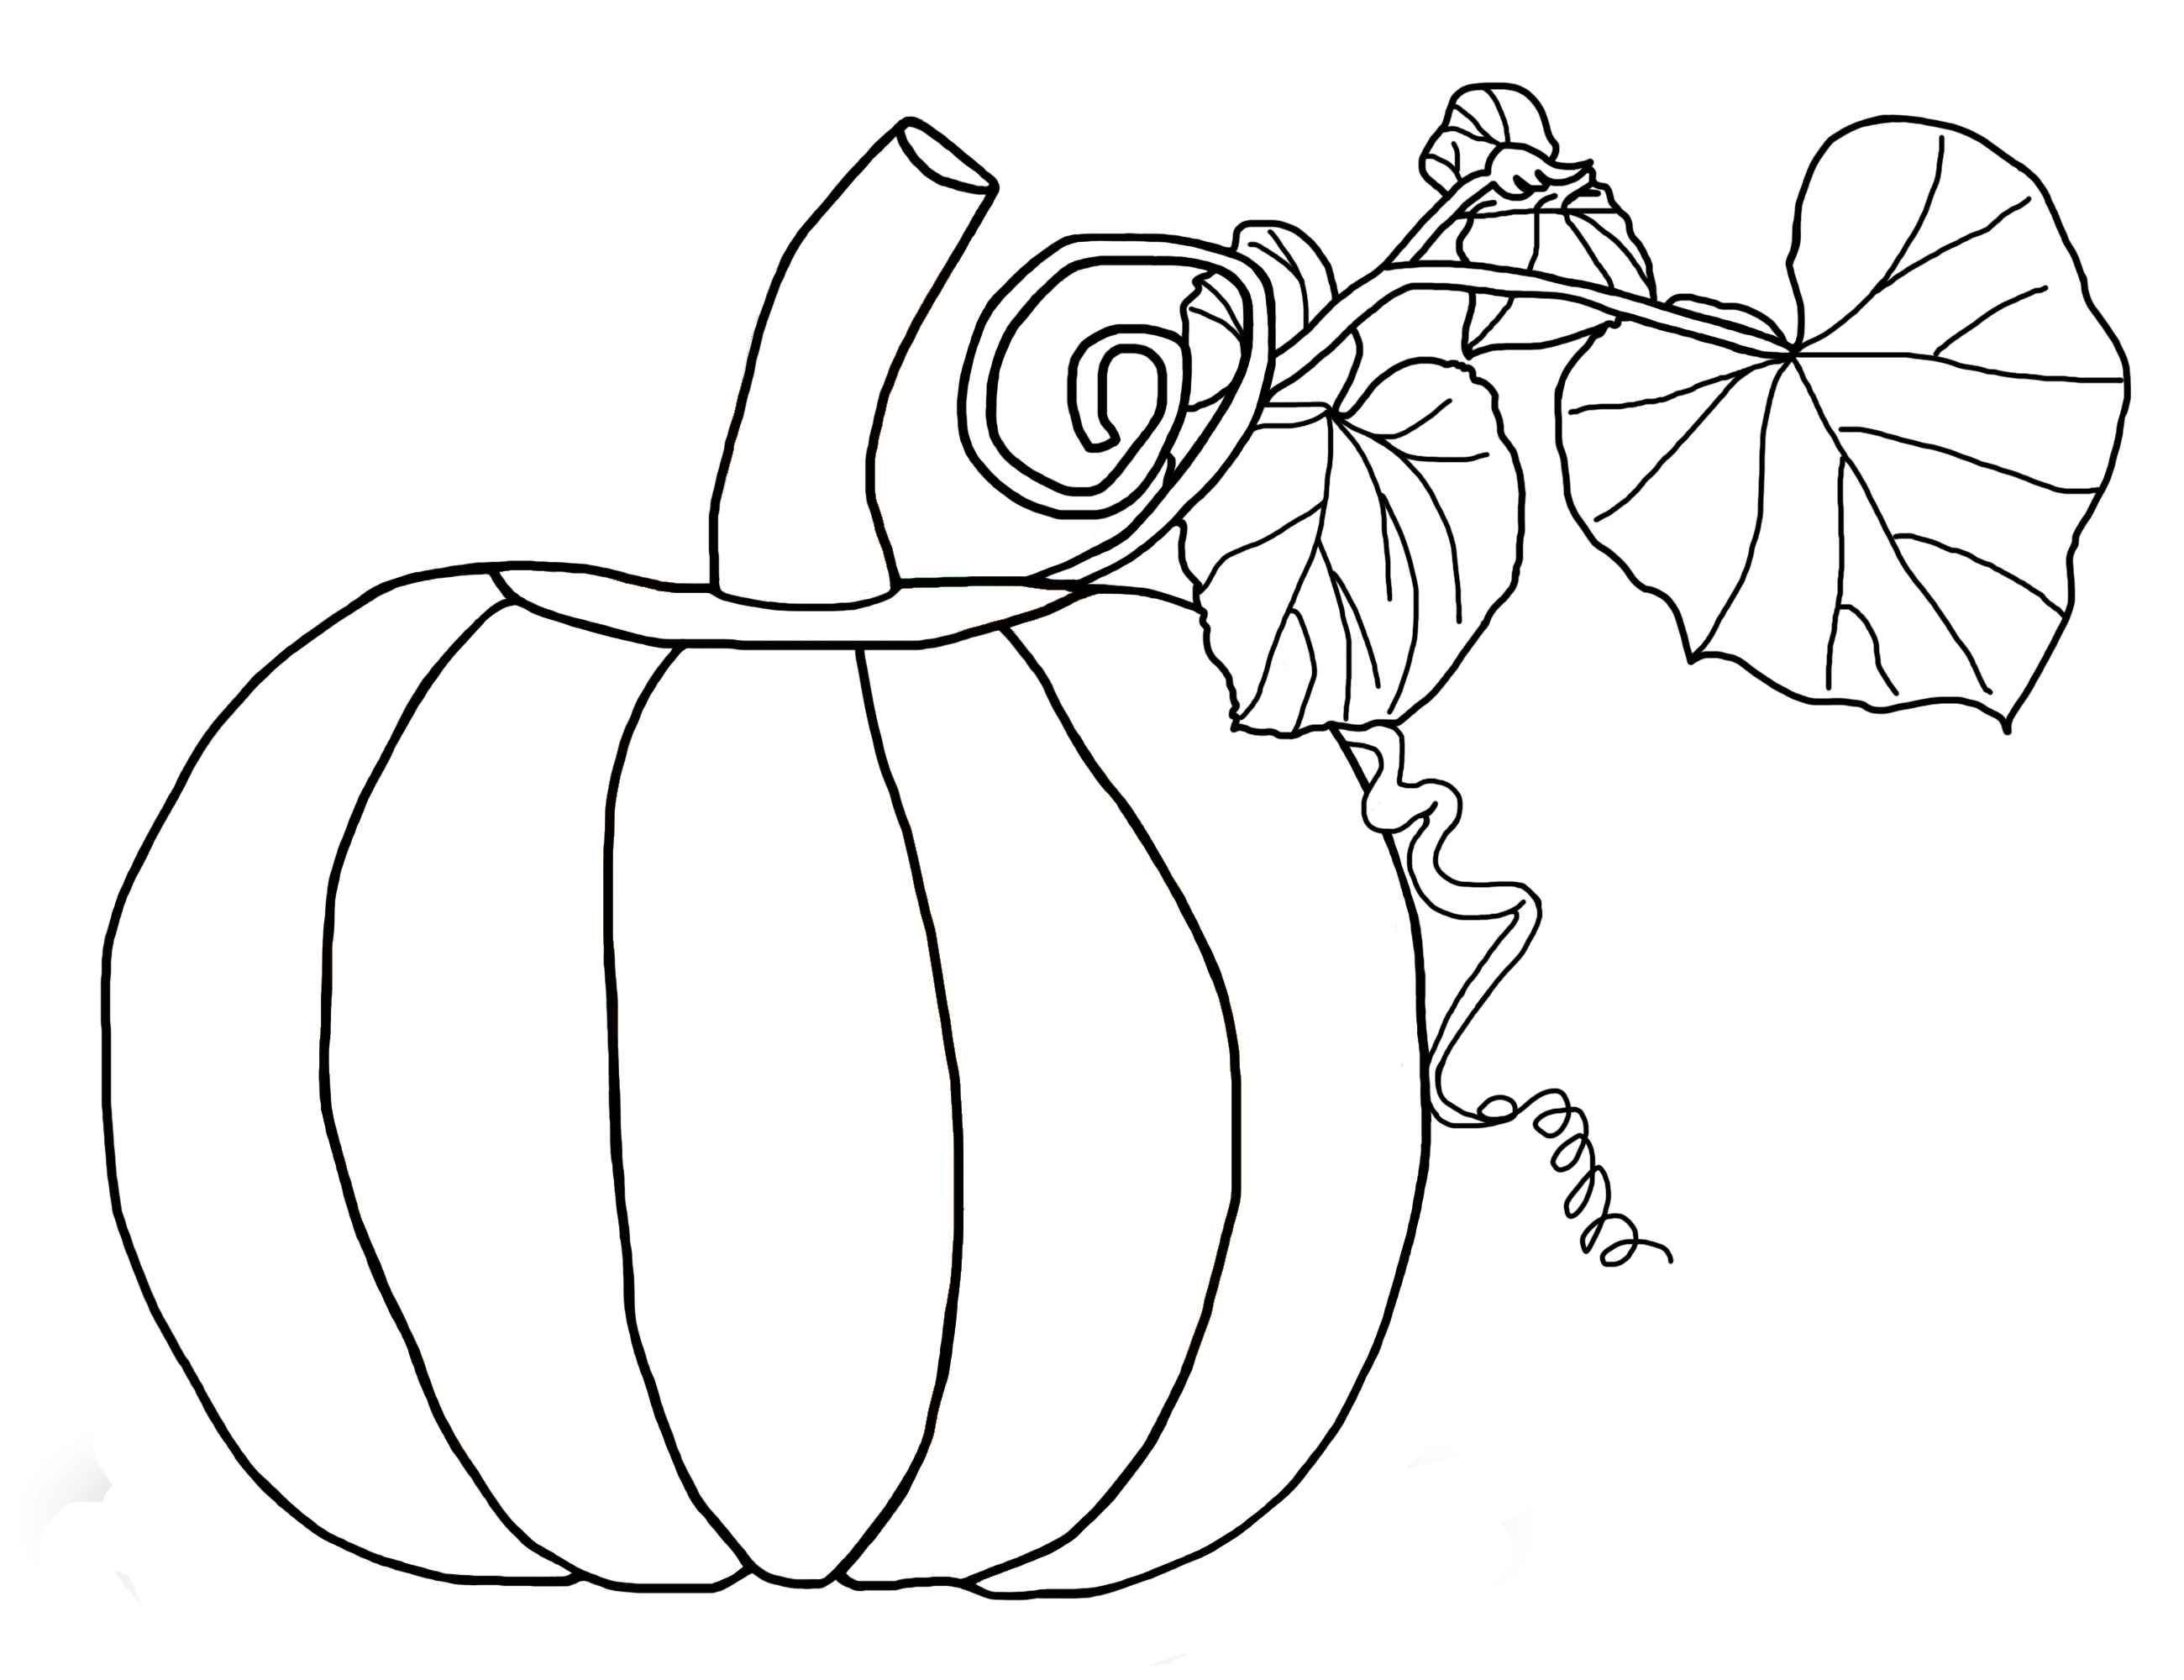 Printable Pumpkin Coloring Pages Free Pumpkin Coloring Pages For Kids